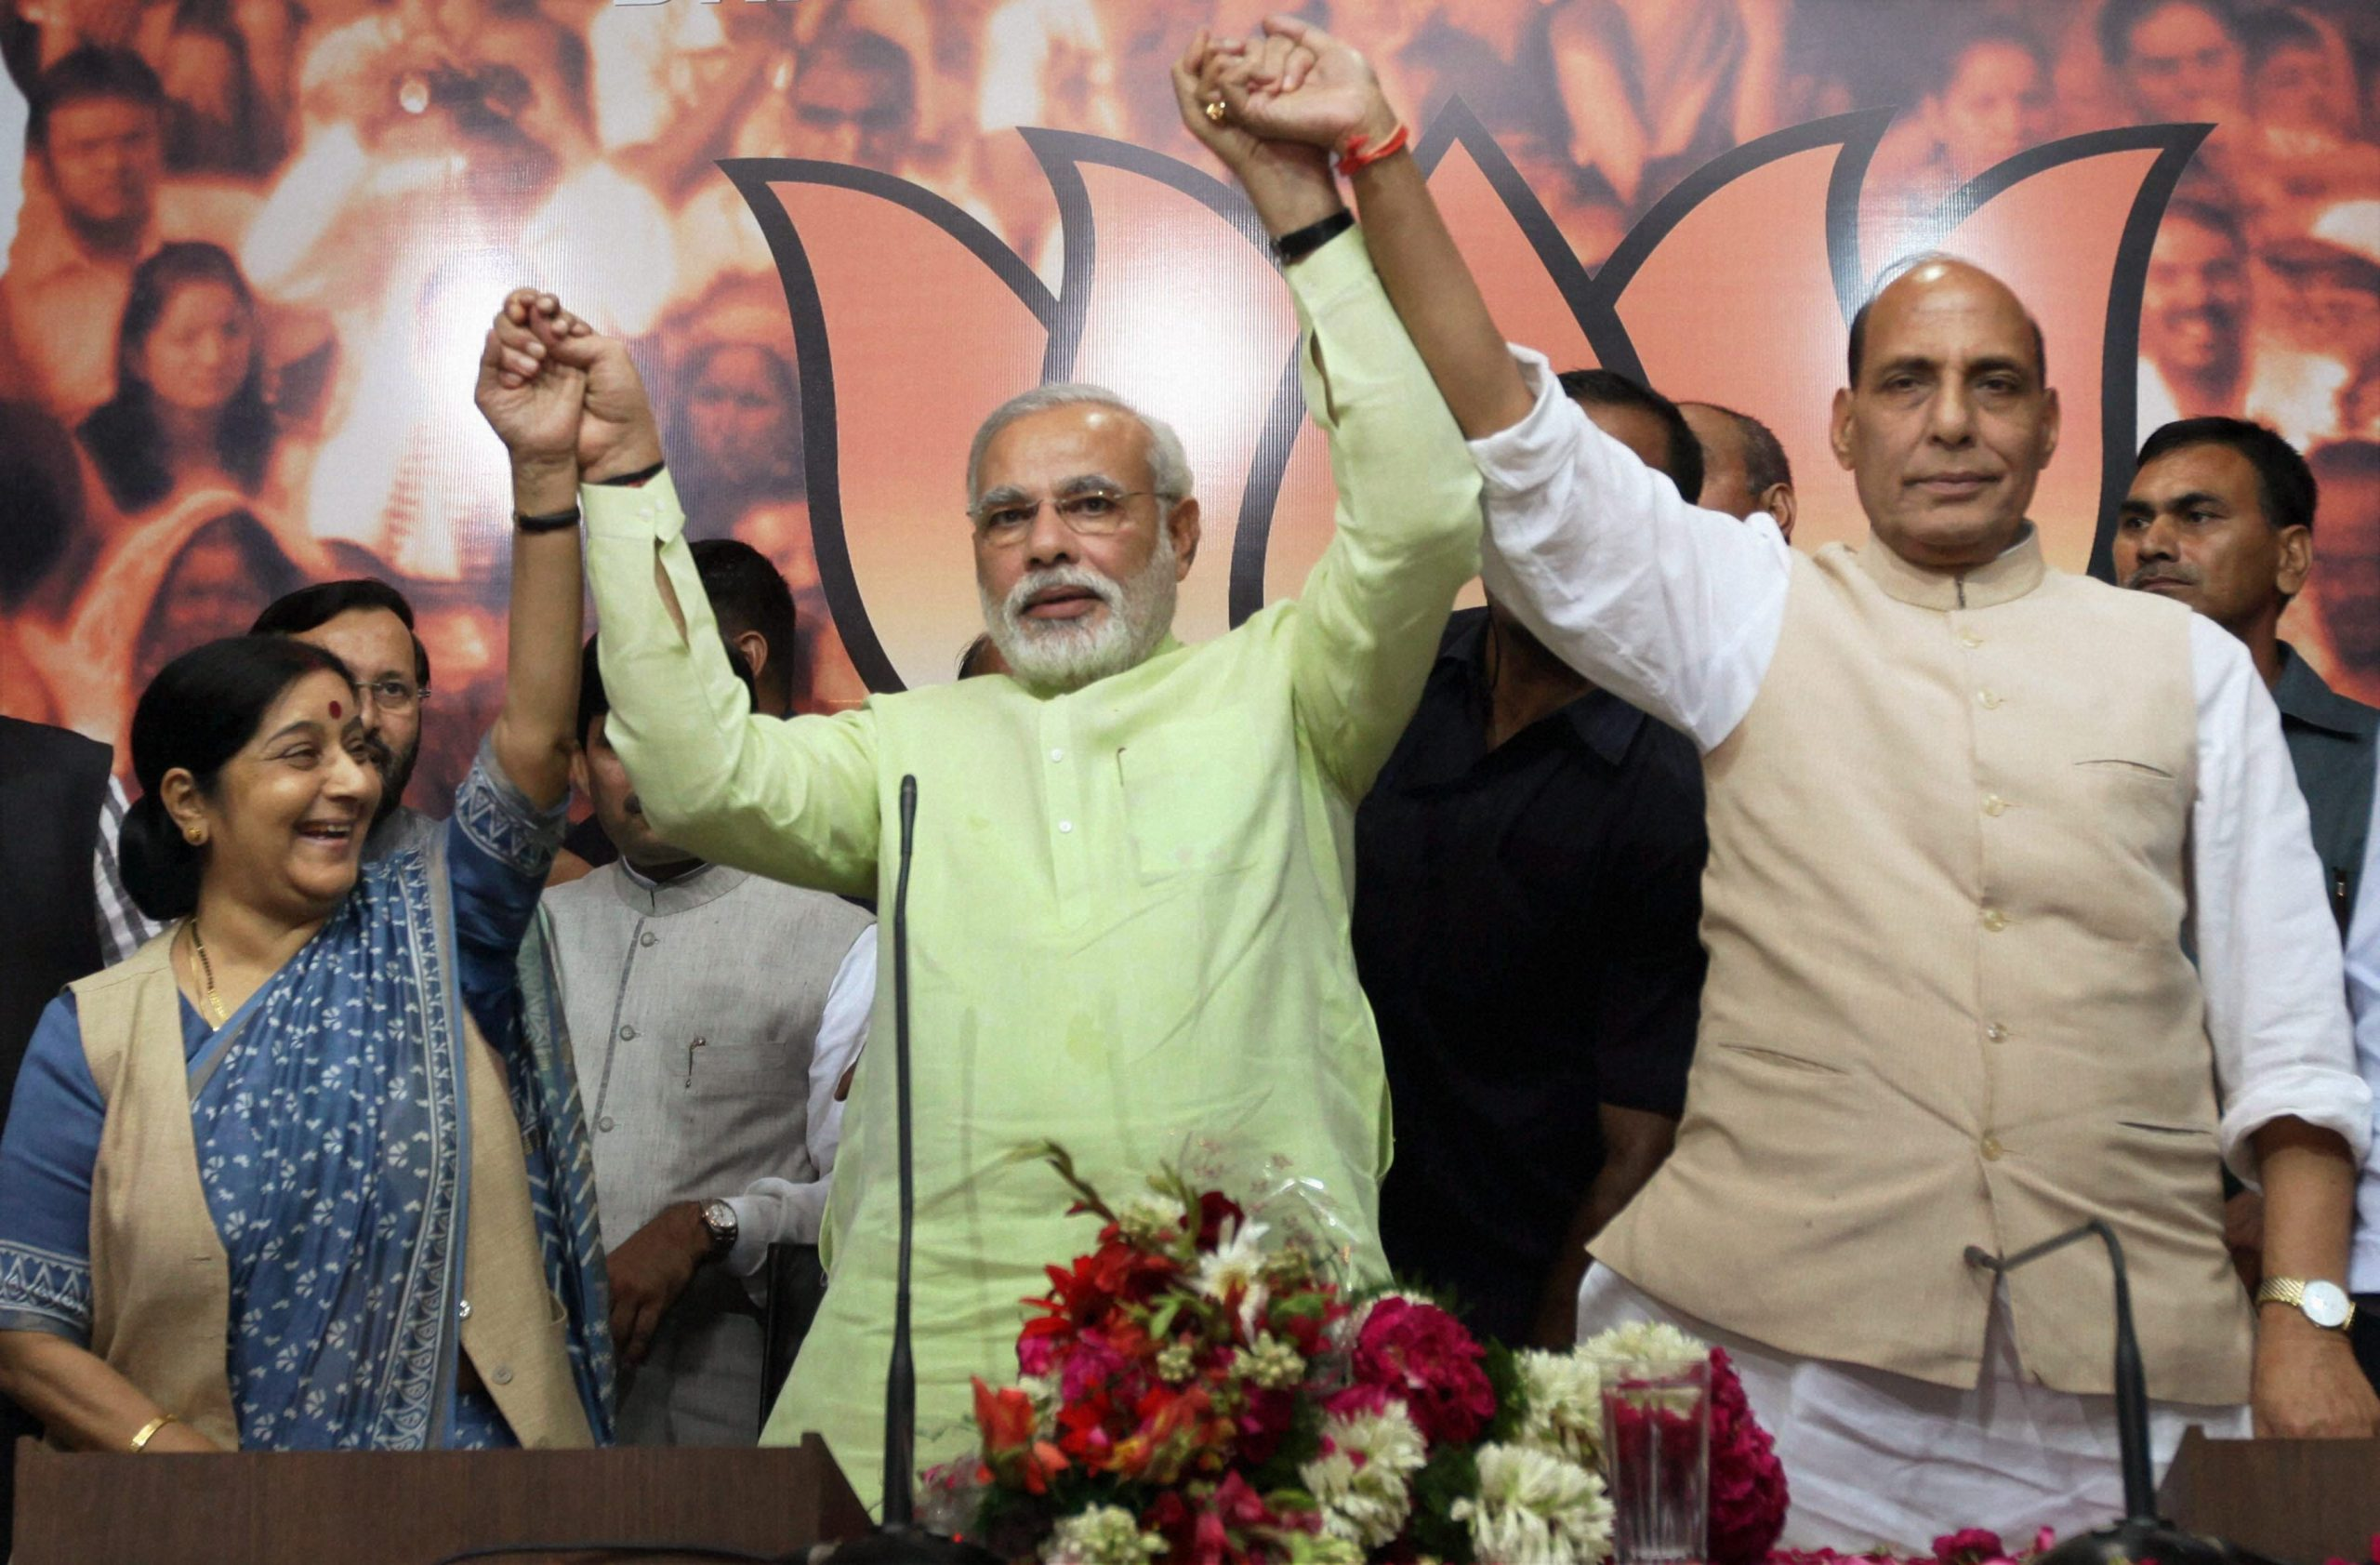 On 13 September 2013, BJP announced Narendra Modi as its Prime Ministerial  candidate. I never thought he would win